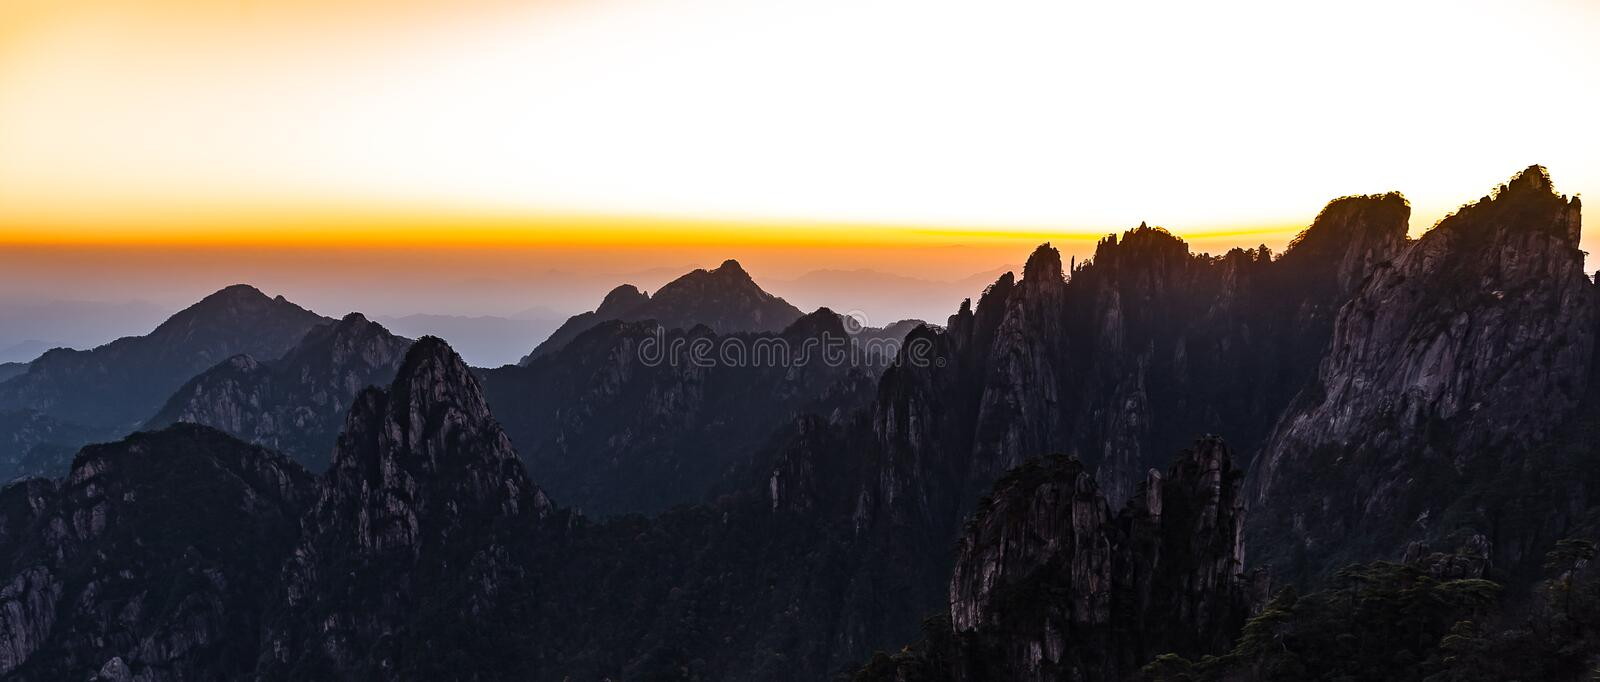 UNESCO World Heritage Site Natural beautiful sunrise landscape of Huangshan mountain scenery  Yellow mountain  in Anhui CHINA, royalty free stock photo